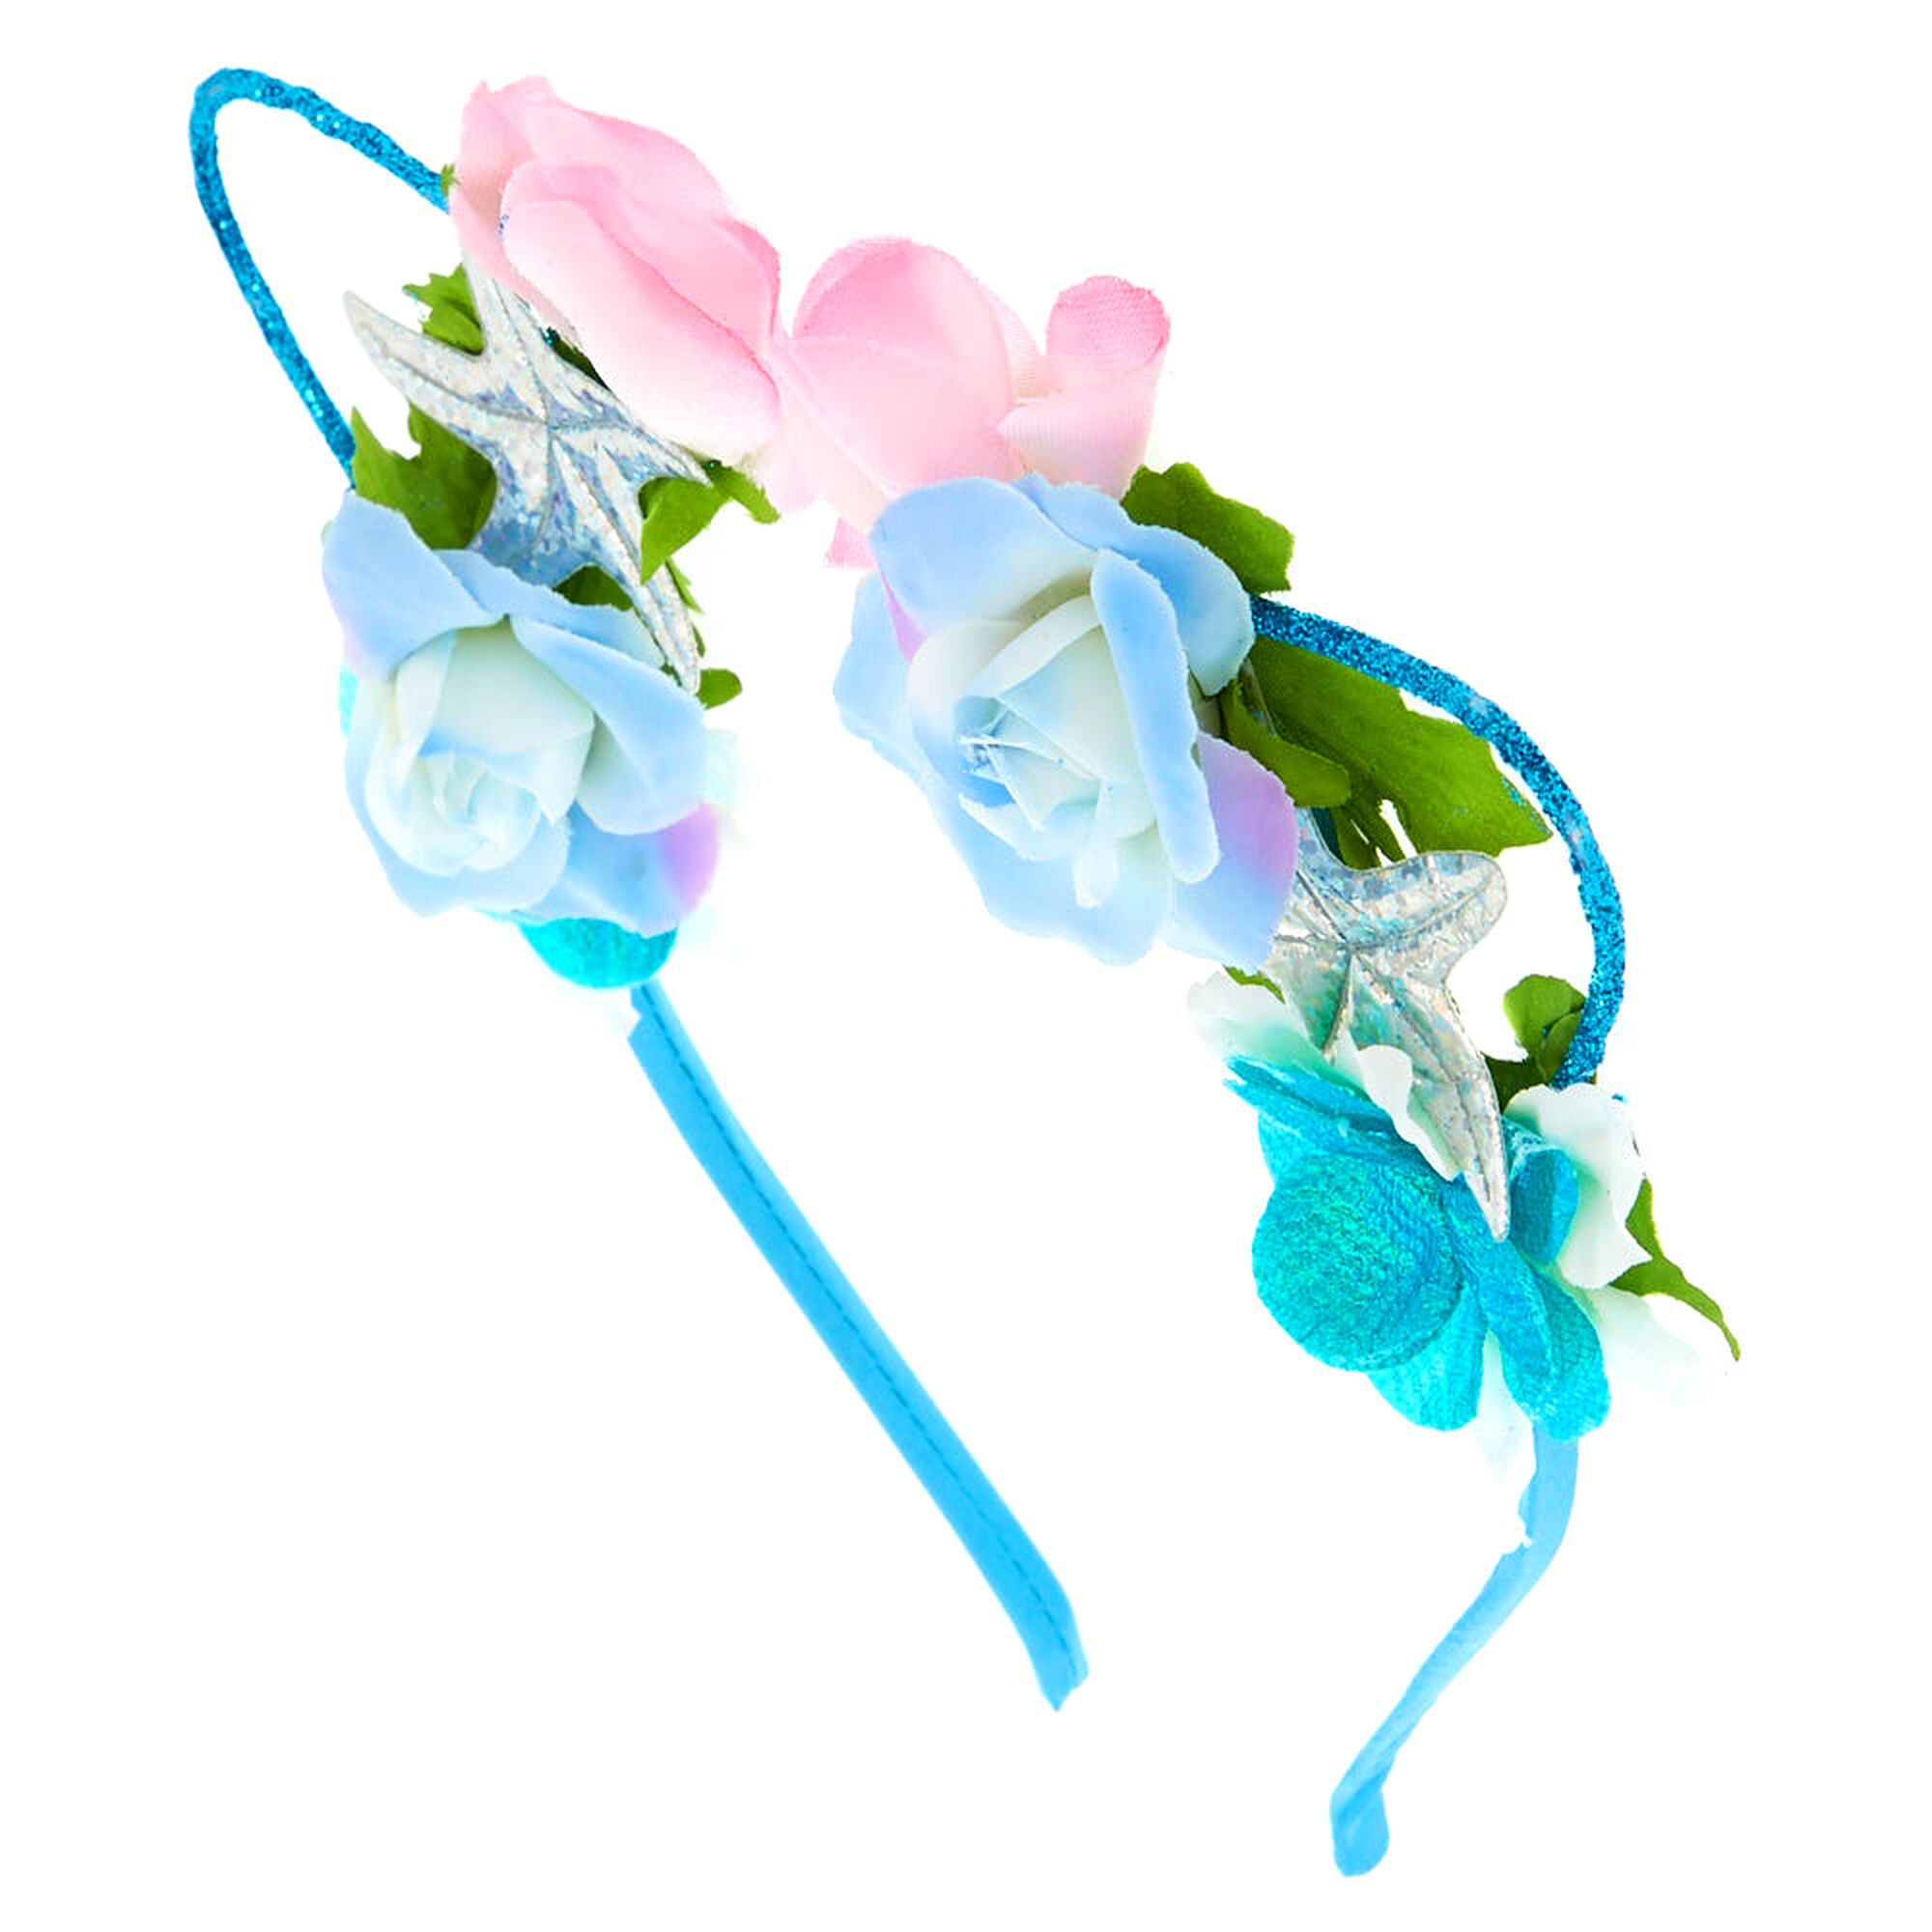 Holographic Mermaid Cat Ears Flower Crown Headband Claires Us